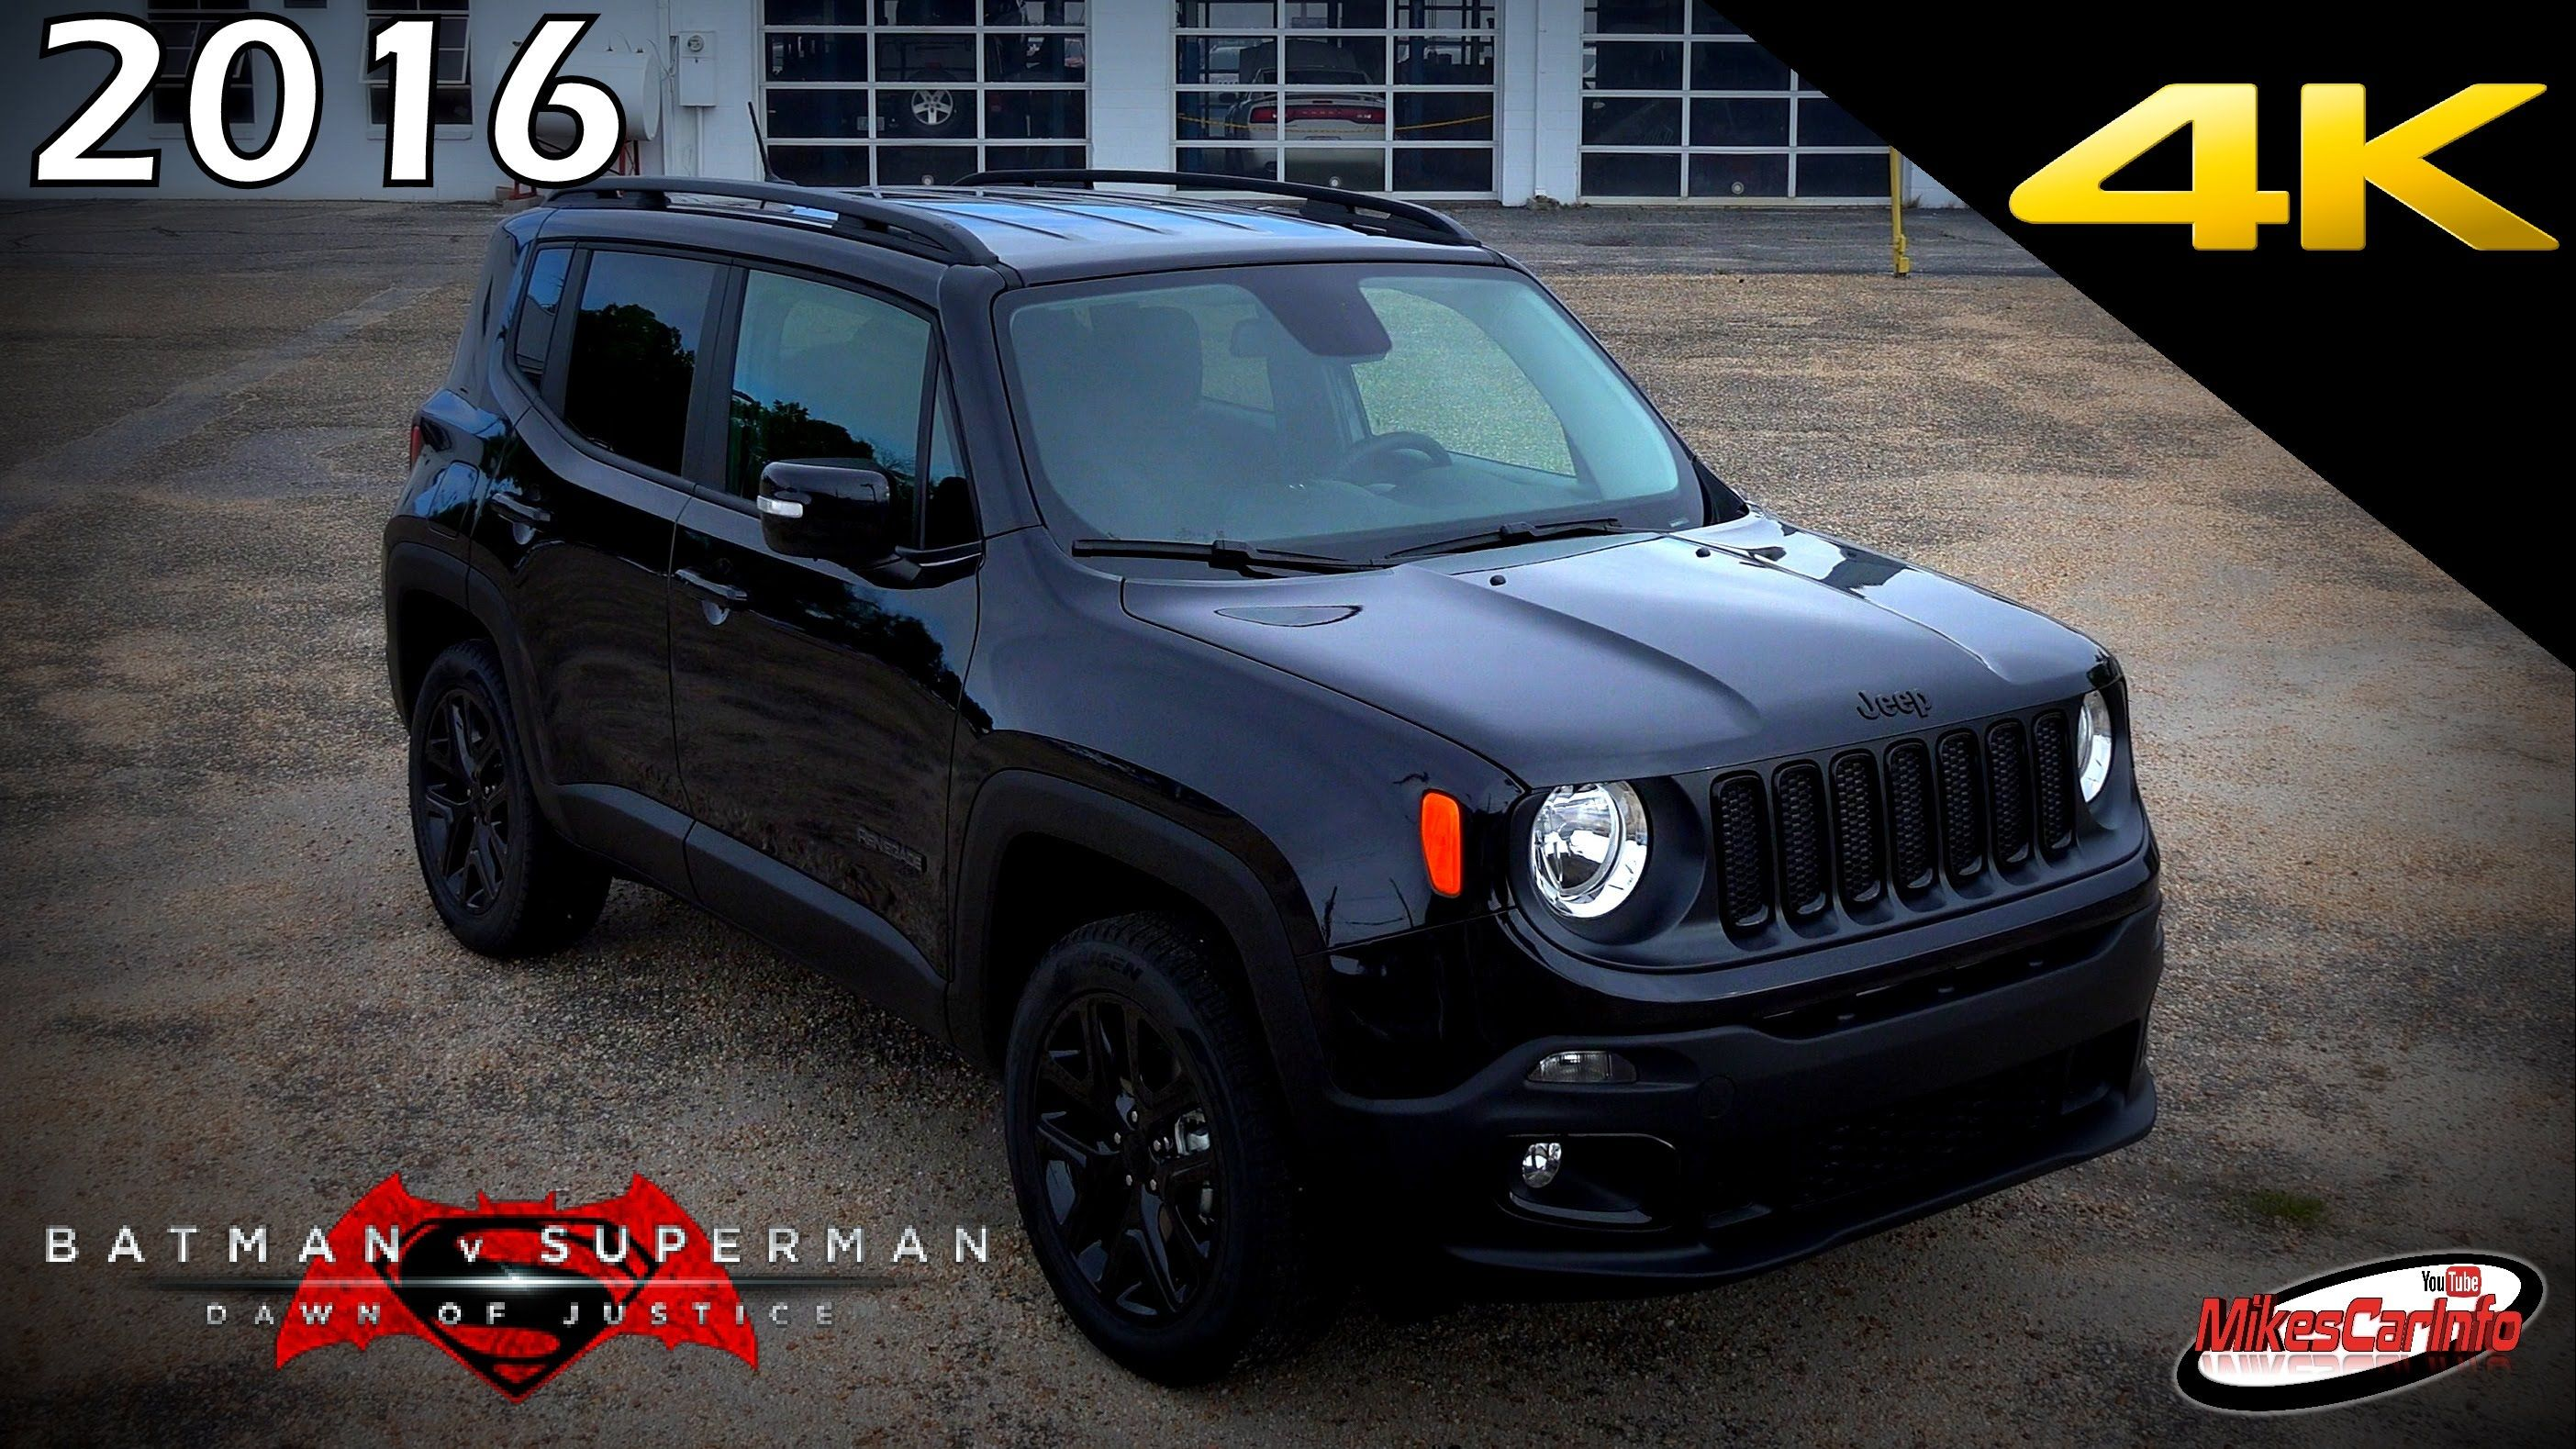 2016 Jeep Renegade Batman V Superman Dawn Of Justice Special Edition Jeep Renegade Jeep 2016 Jeep